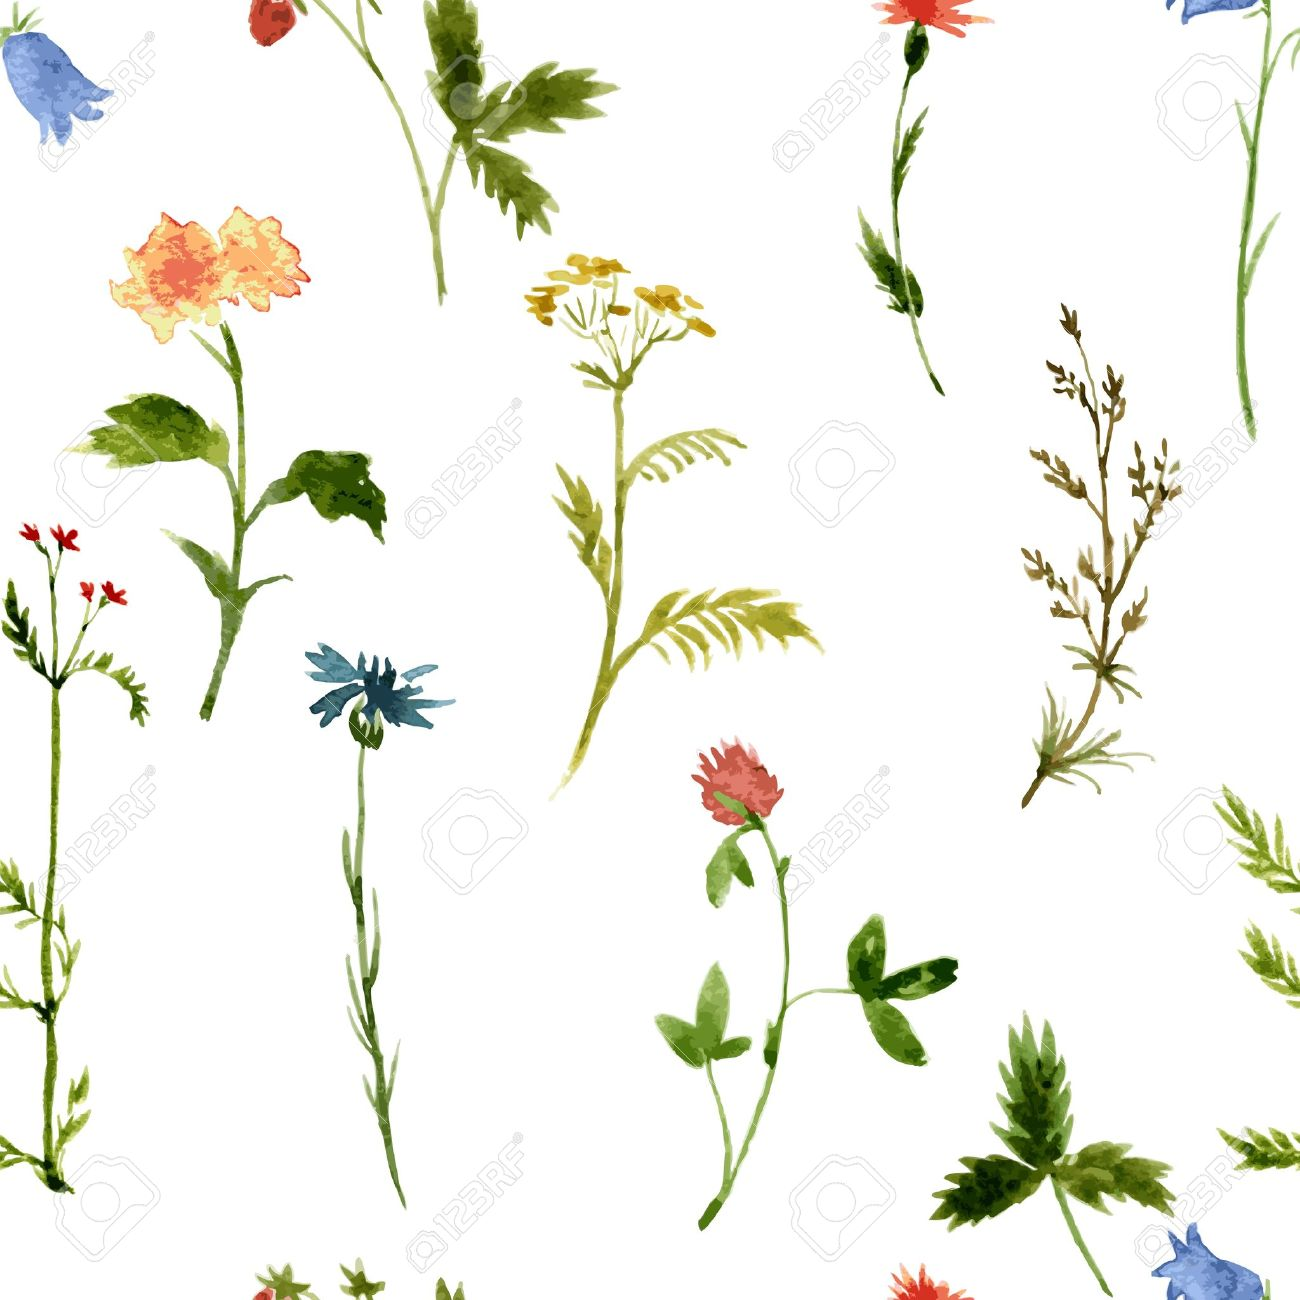 Vector Seamless Pattern With Watercolor Wild Flowers And Grass.